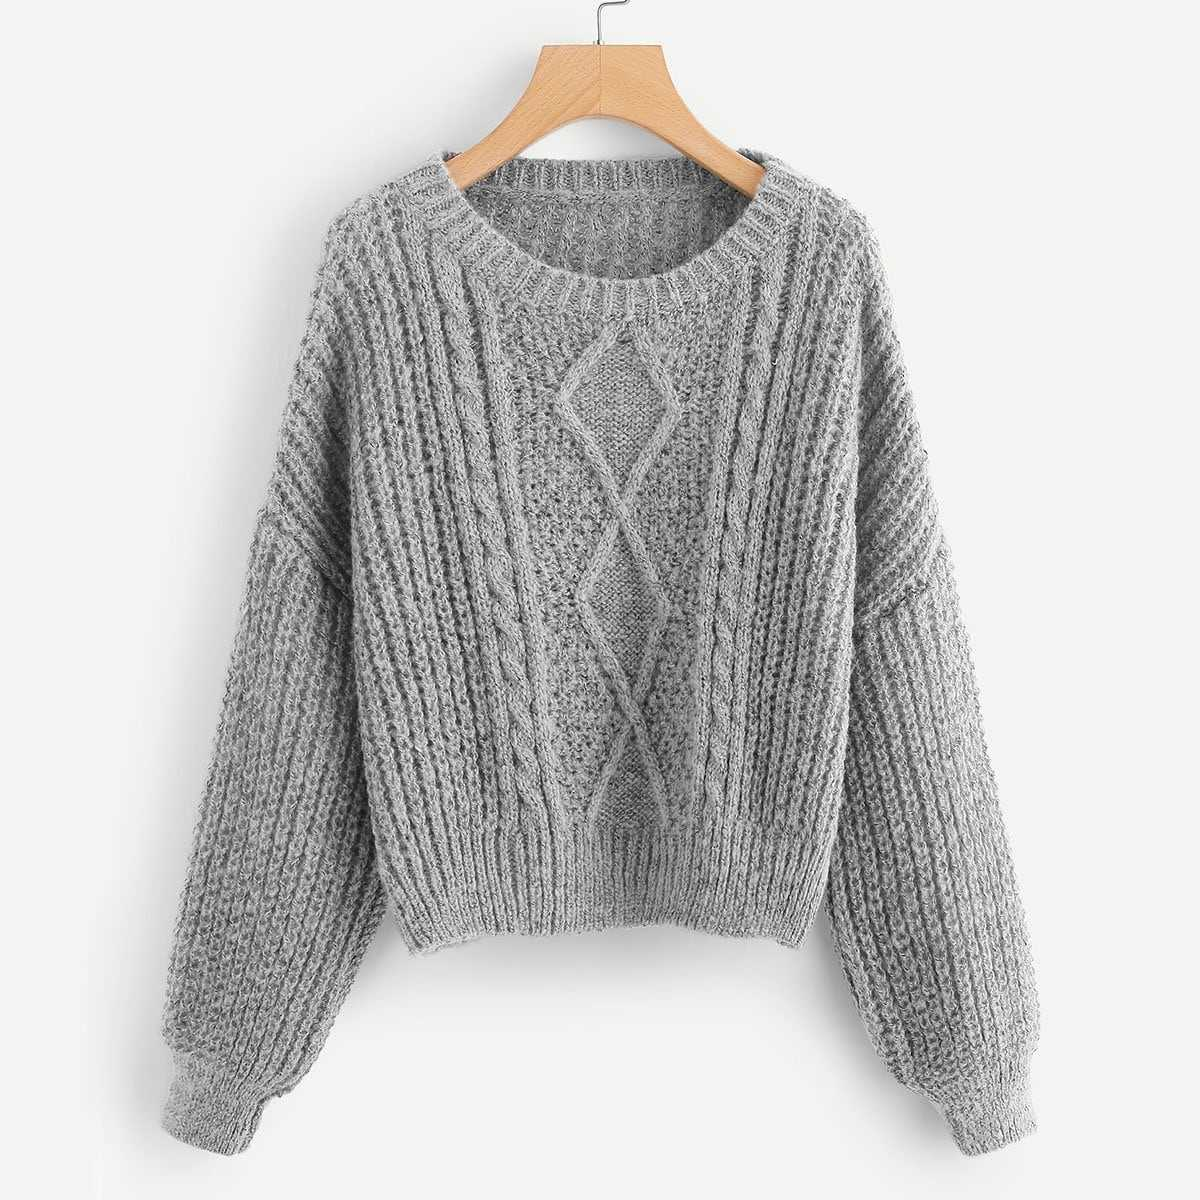 Drop Shoulder Mixed Knit Sweater in Grey by ROMWE on GOOFASH